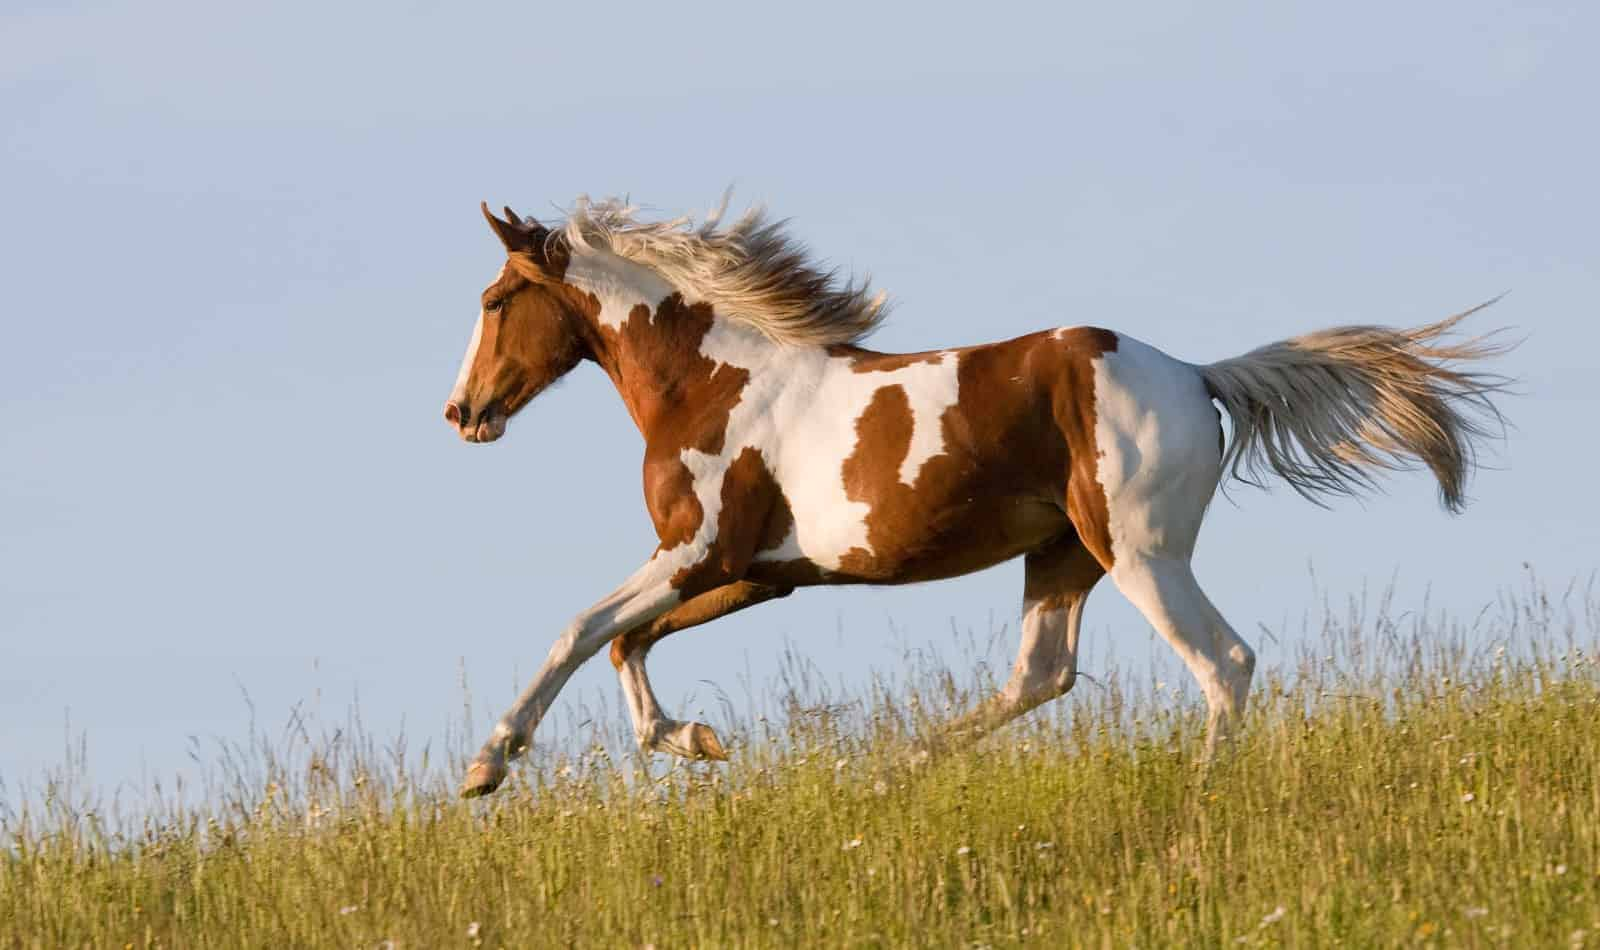 Looking for the best horse breeds for first-time owners? We narrowed the list of 300+ breeds to just the top 10! Check it out!